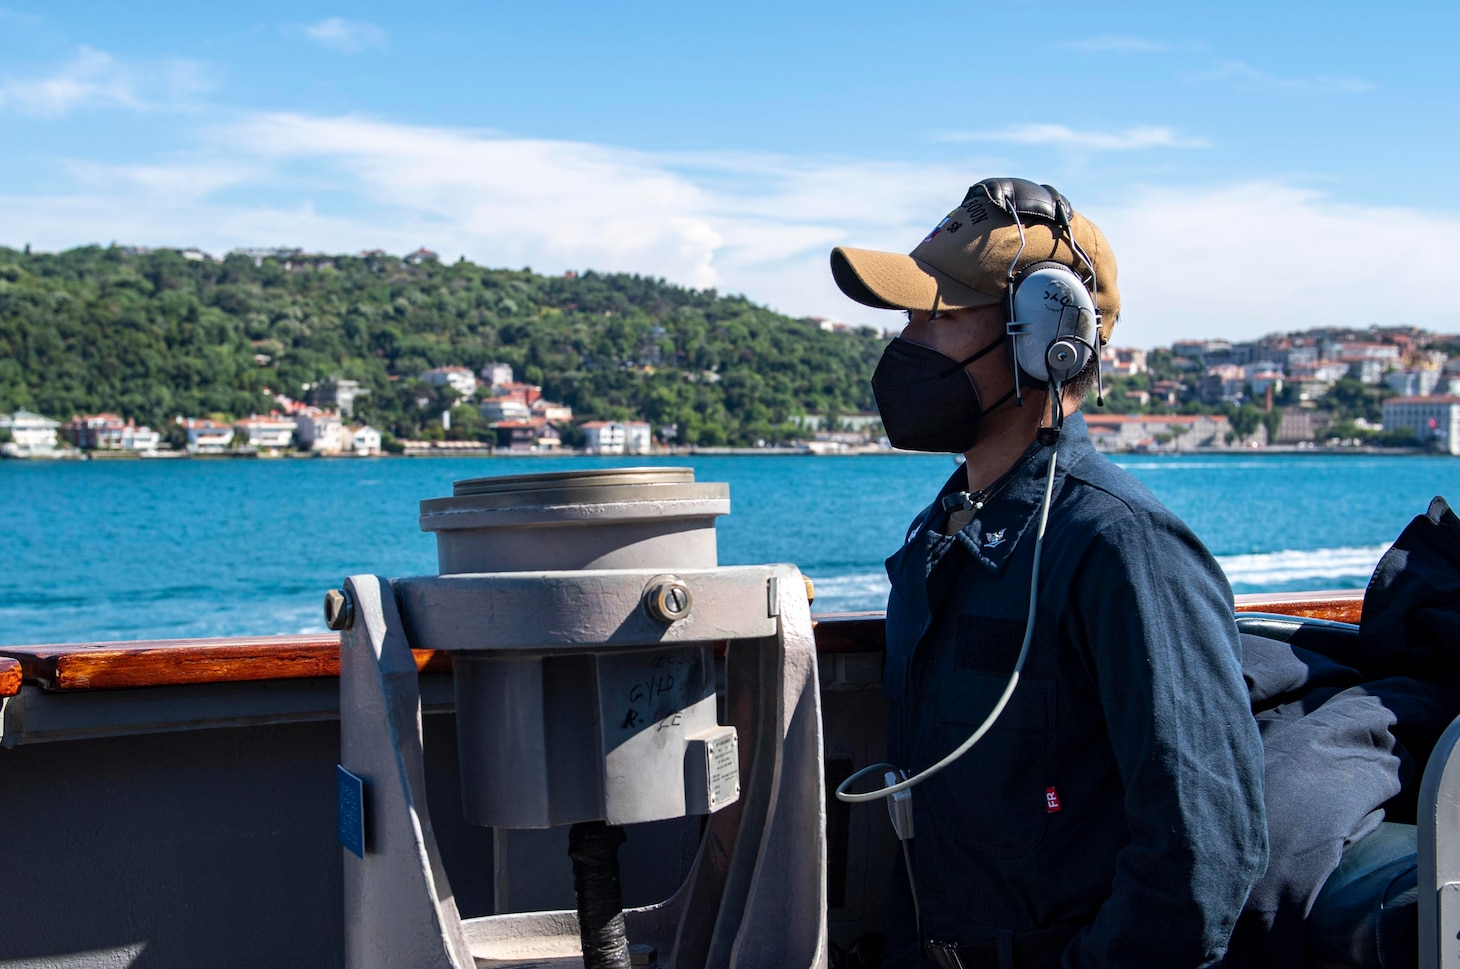 Culinary Specialist 3rd Class Jubidane Maraton, assigned to the Arleigh Burke-class guided-missile destroyer USS Laboon (DDG58), stands lookout watch as Laboon transits en route to the Black Sea, June 11, 2021.